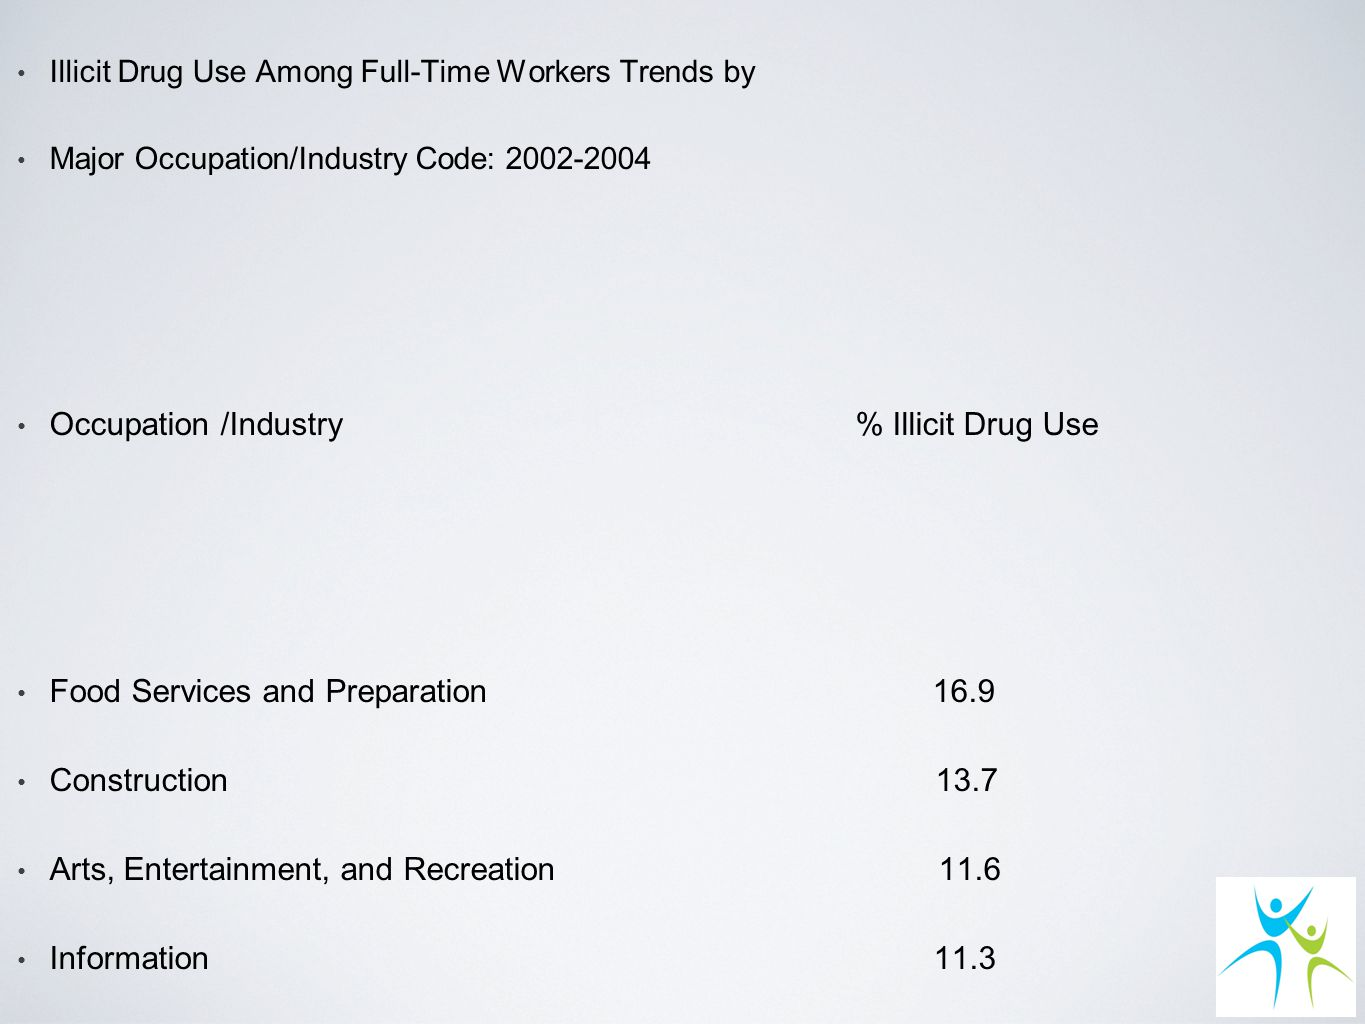 Illicit Drug Use Among Full-Time Workers Trends by Major Occupation/Industry Code: 2002-2004 Occupation /Industry % Illicit Drug Use Food Services and Preparation 16.9 Construction 13.7 Arts, Entertainment, and Recreation 11.6 Information 11.3 Management of Companies, Admin, Services 10.9 Retail Trade 9.4 Professional, Scientific, and Technical Services 8.0 Mining 7.3 Transportation and Warehousing 6.2 Health Care and Social Assistance 6.1 Educational Services 4.0 Utilities 3.8